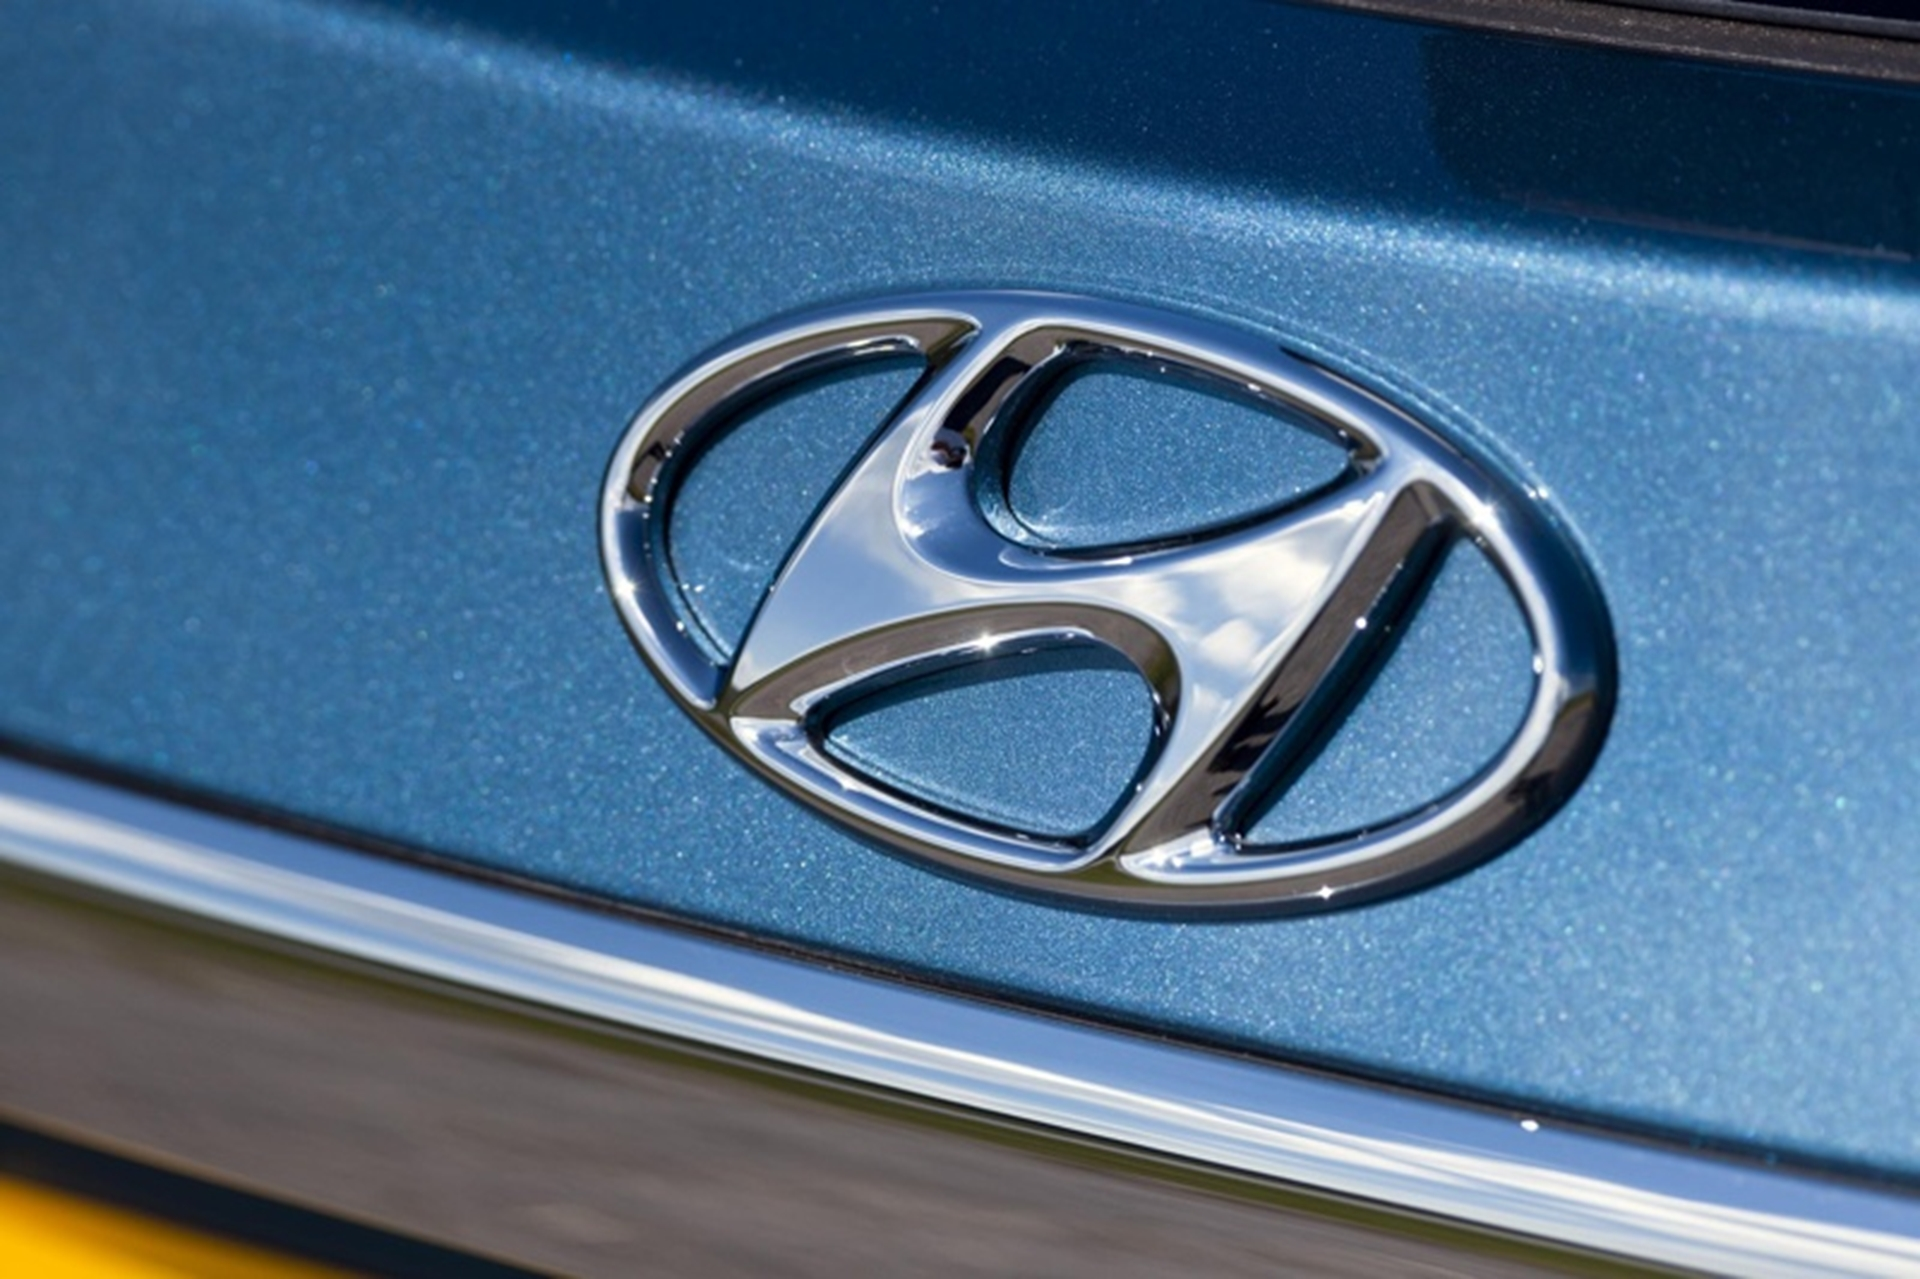 Hyundai i40 badge